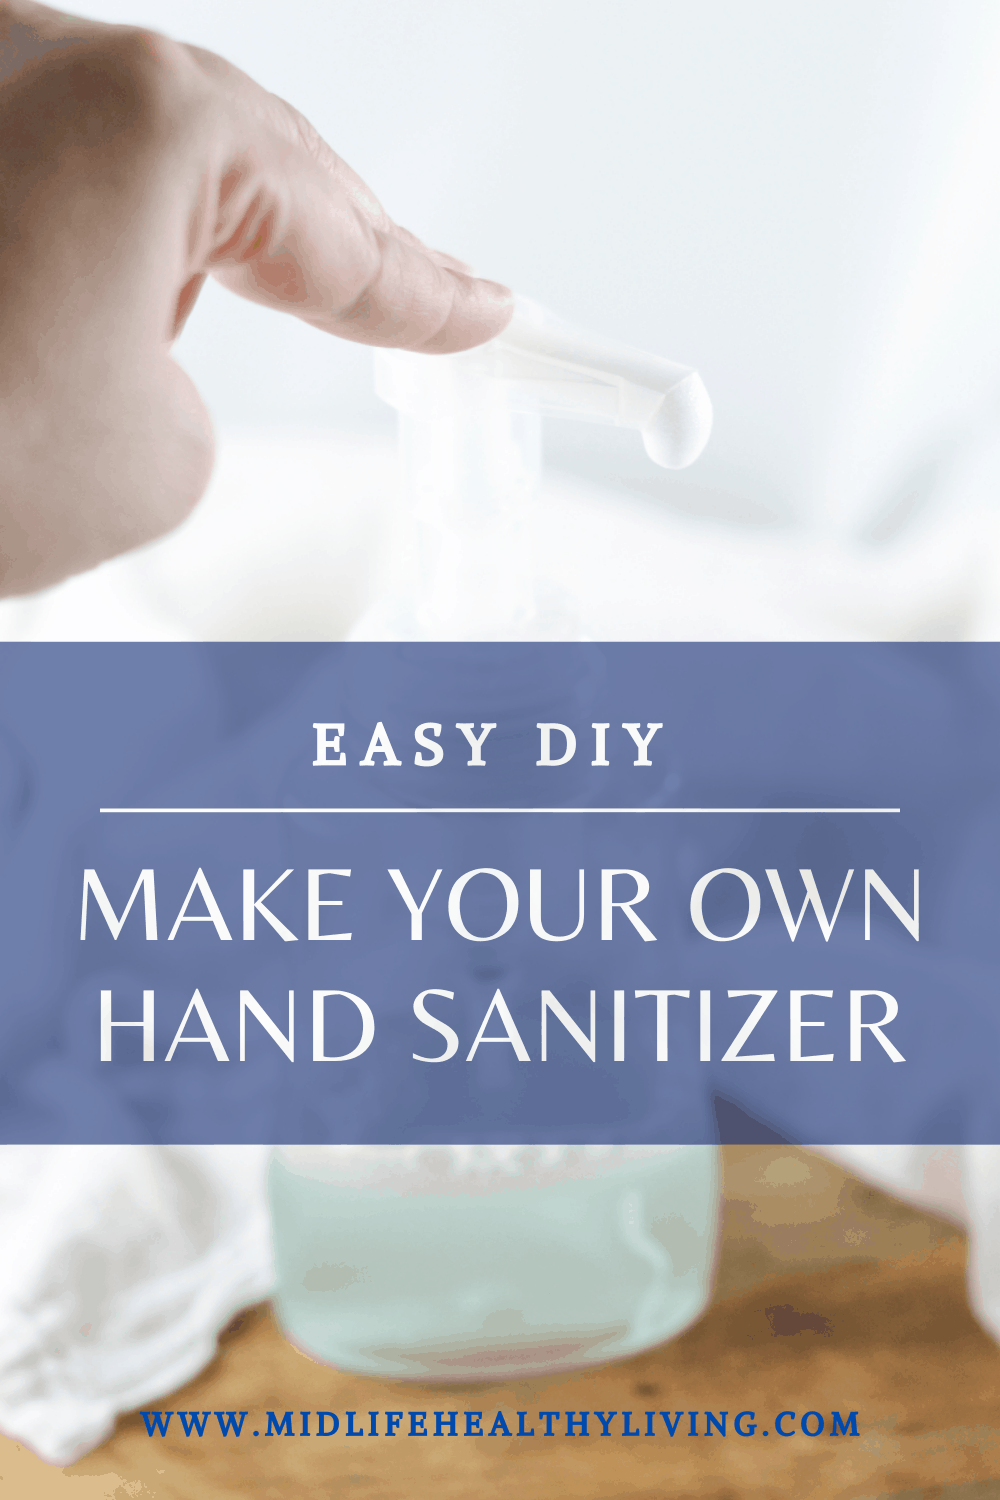 There are times that you may have a need to make your own homemade hand sanitizer. If the supply is low because of high demand or you just want to make your own version of hand sanitizer, I have an easy DIY for you.